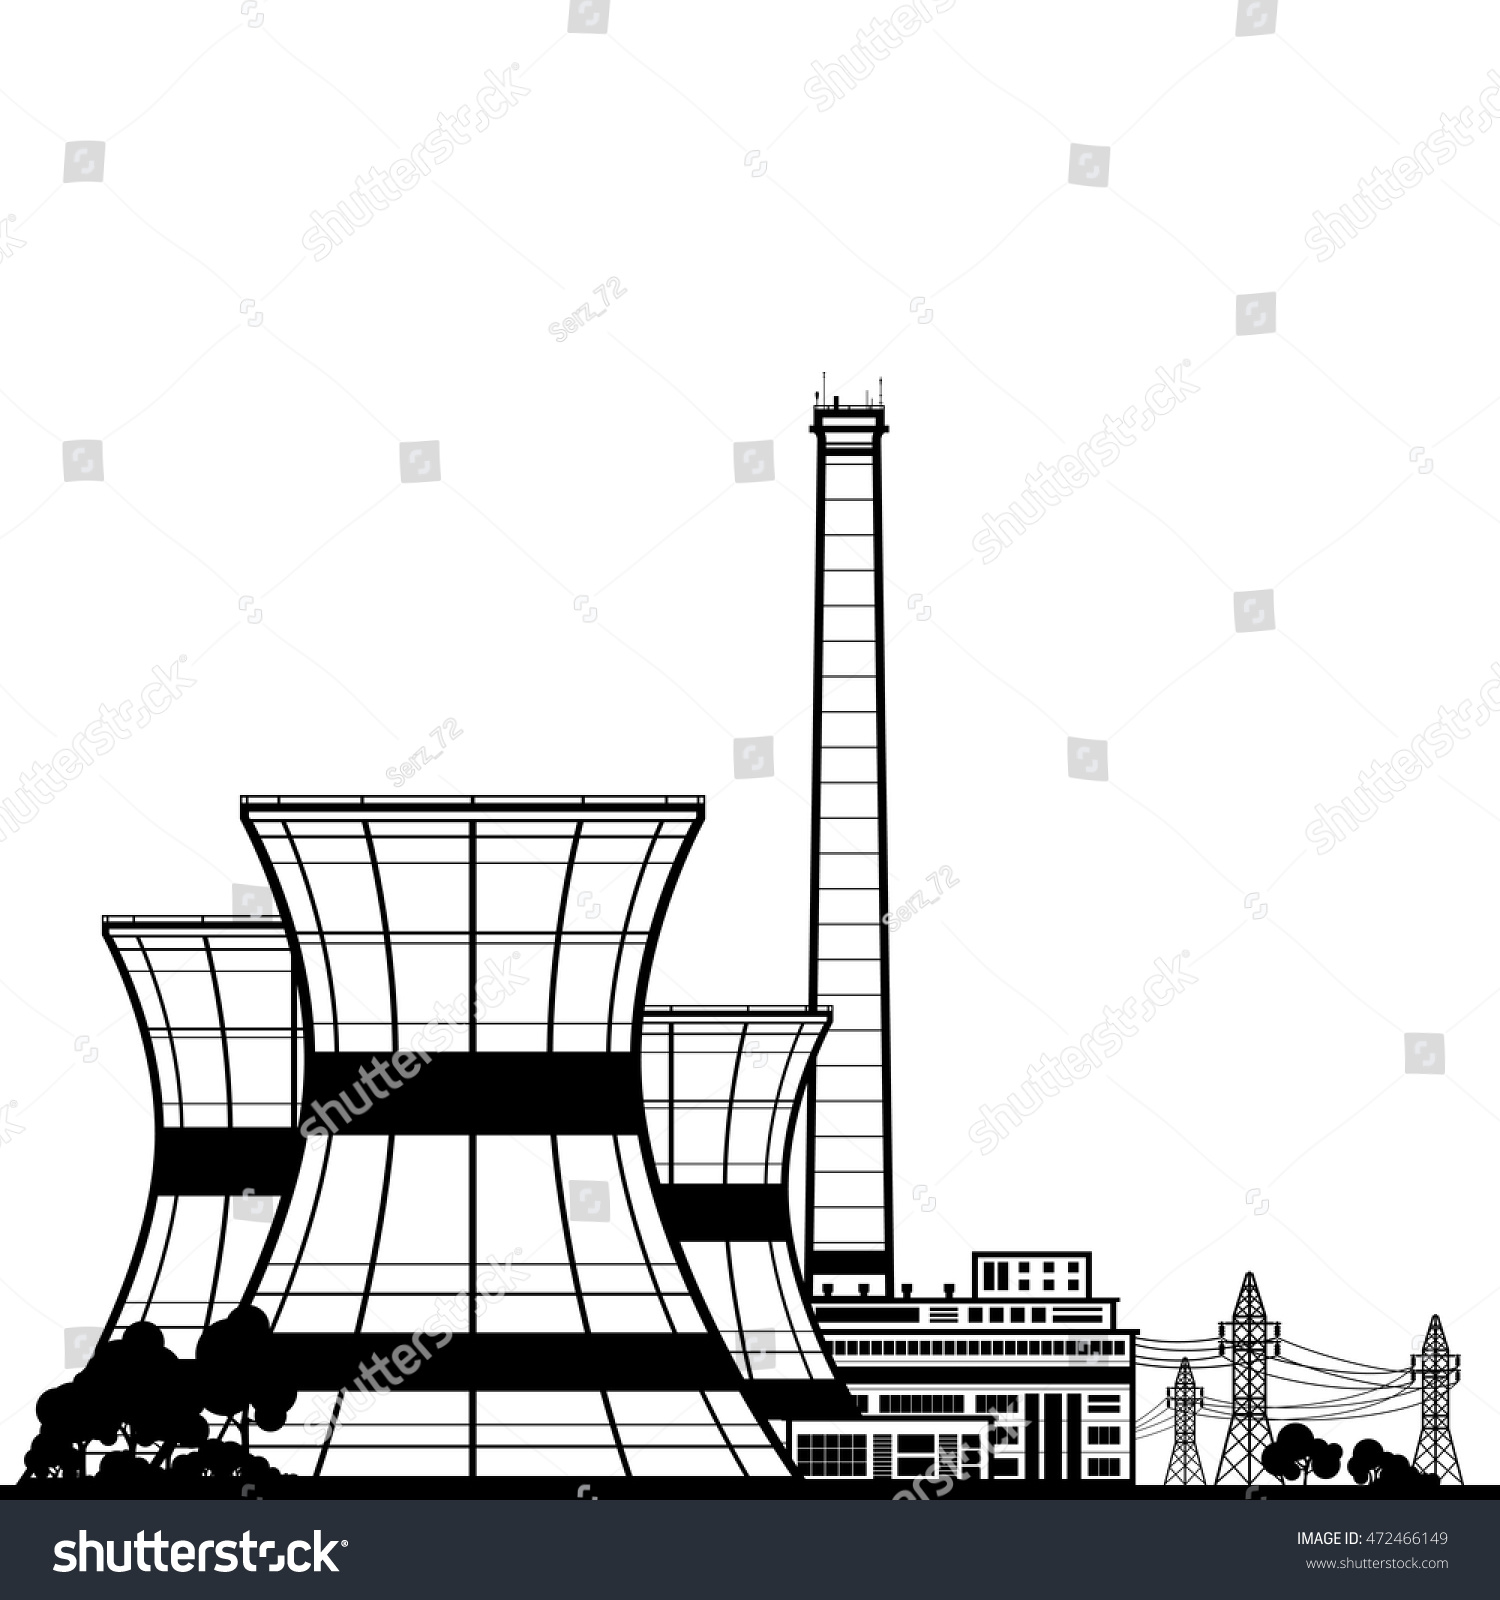 Silhouette Nuclear Power Plant Thermal Power Stock Vector